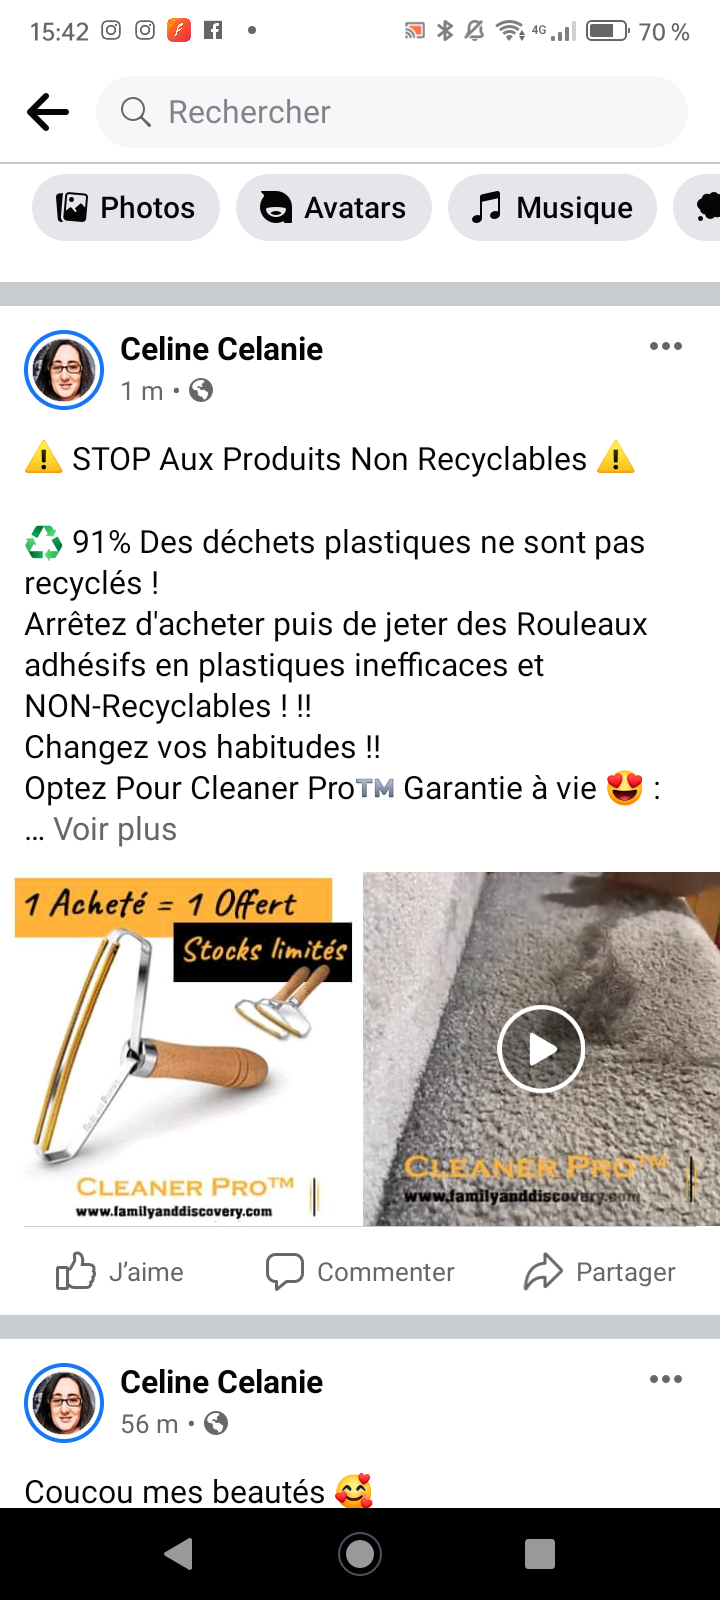 Promotion du Cleaner Pro Family and Discovery